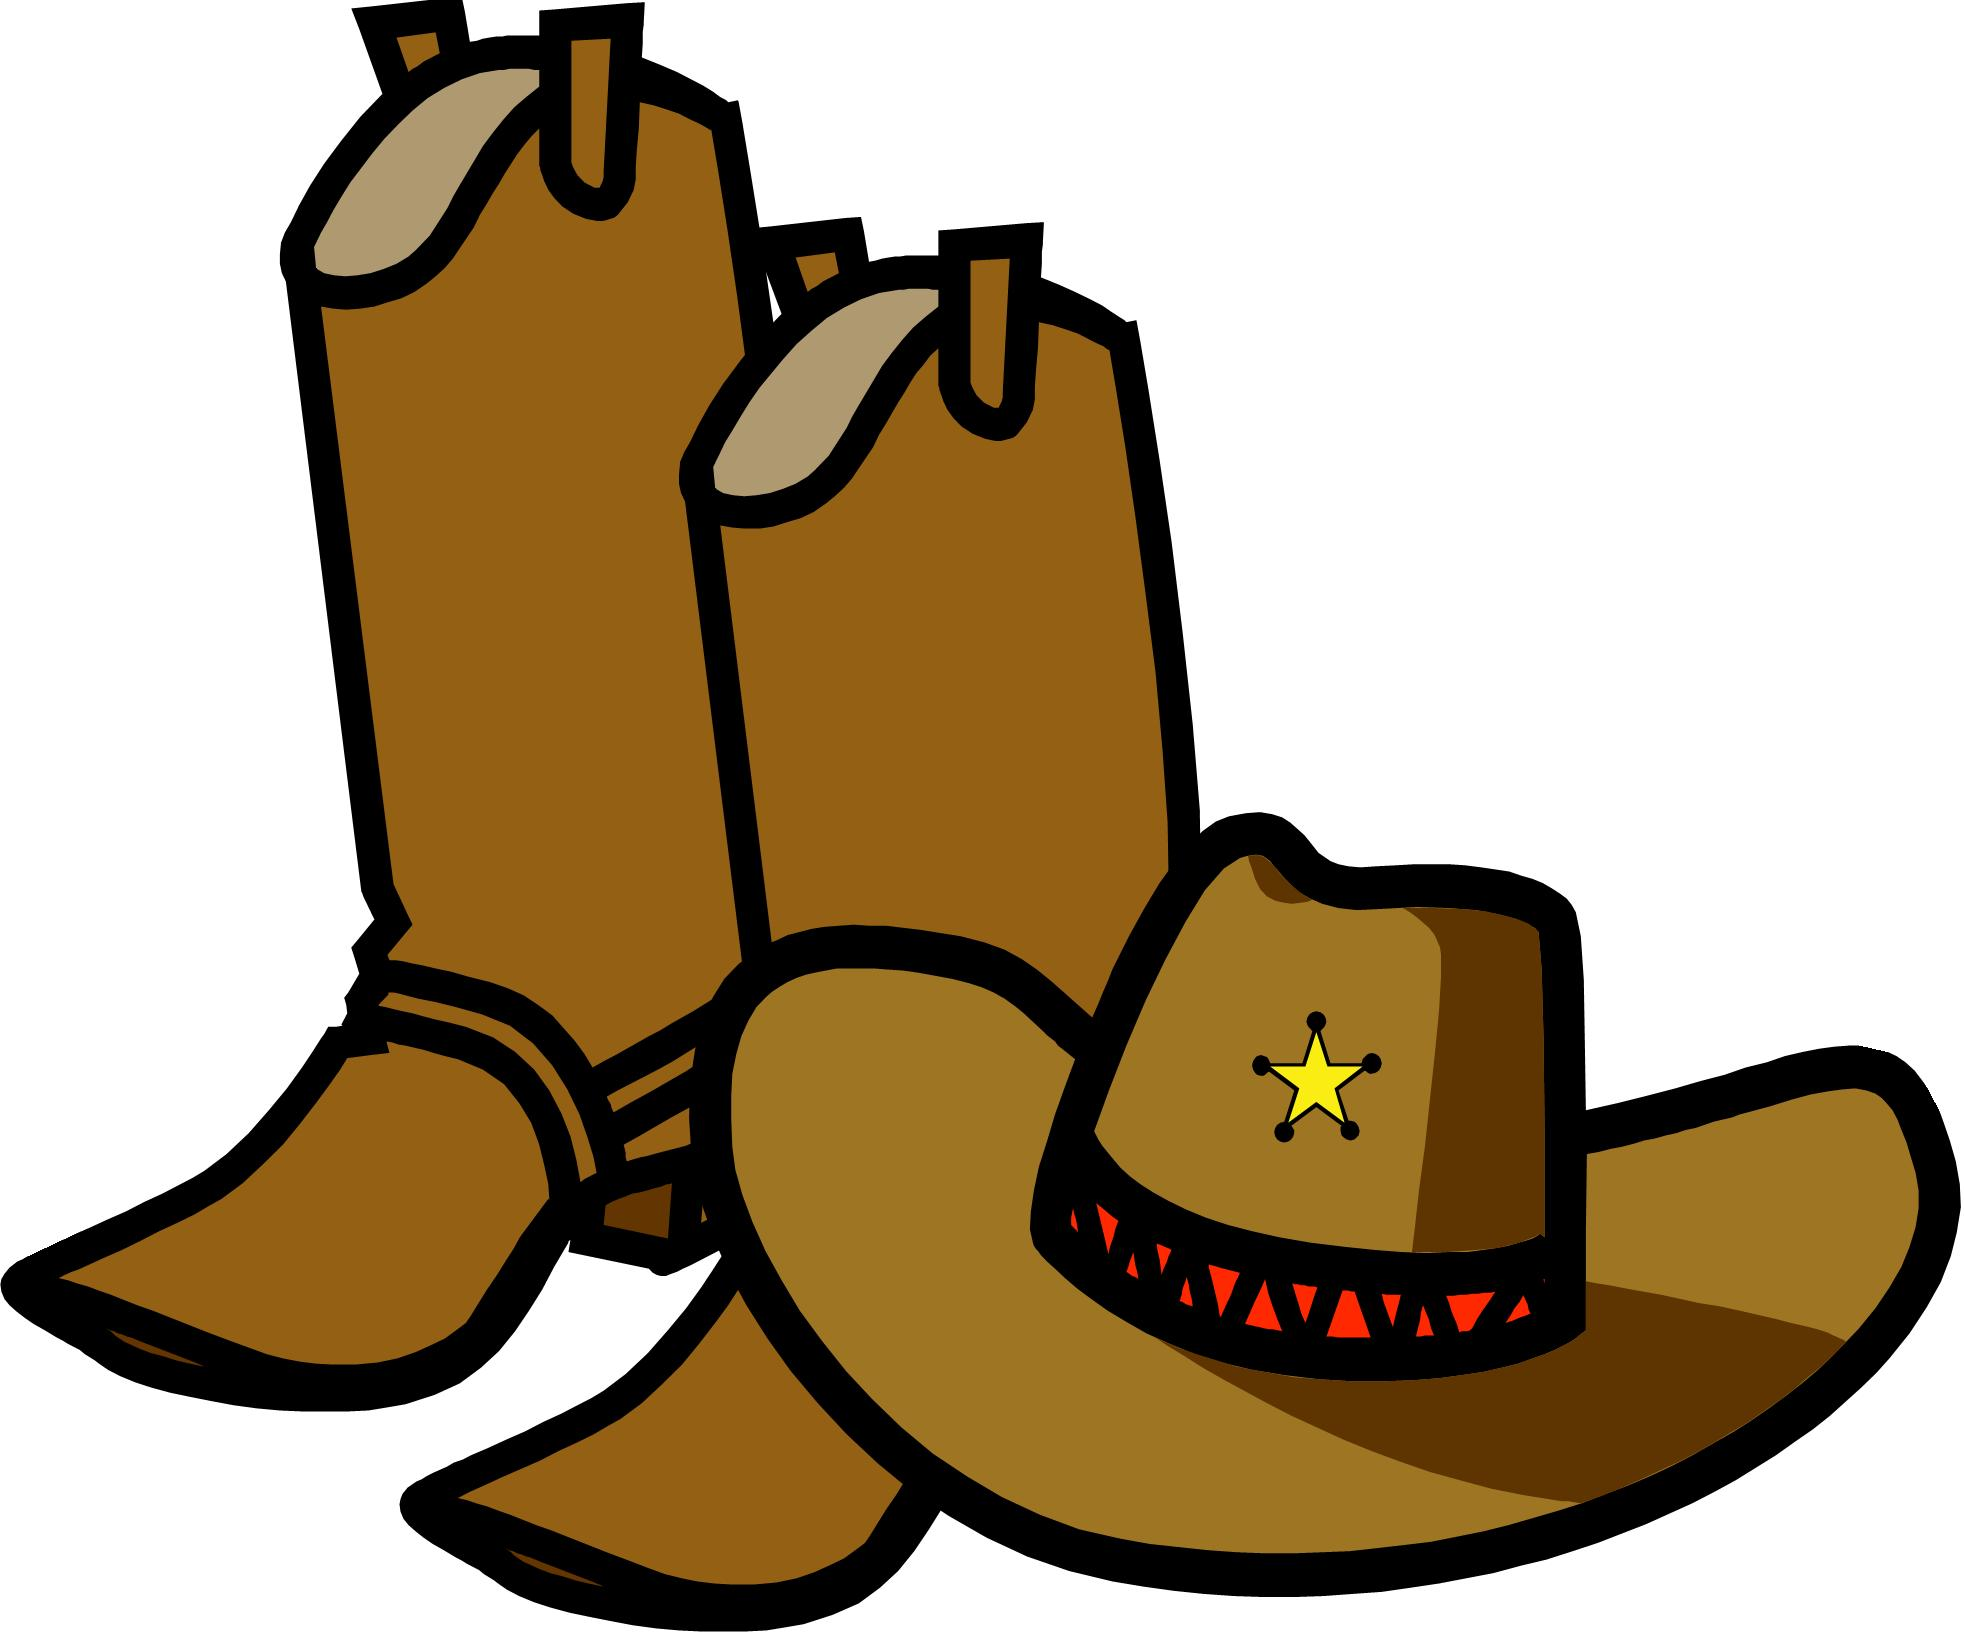 Western clipart free clipart image image